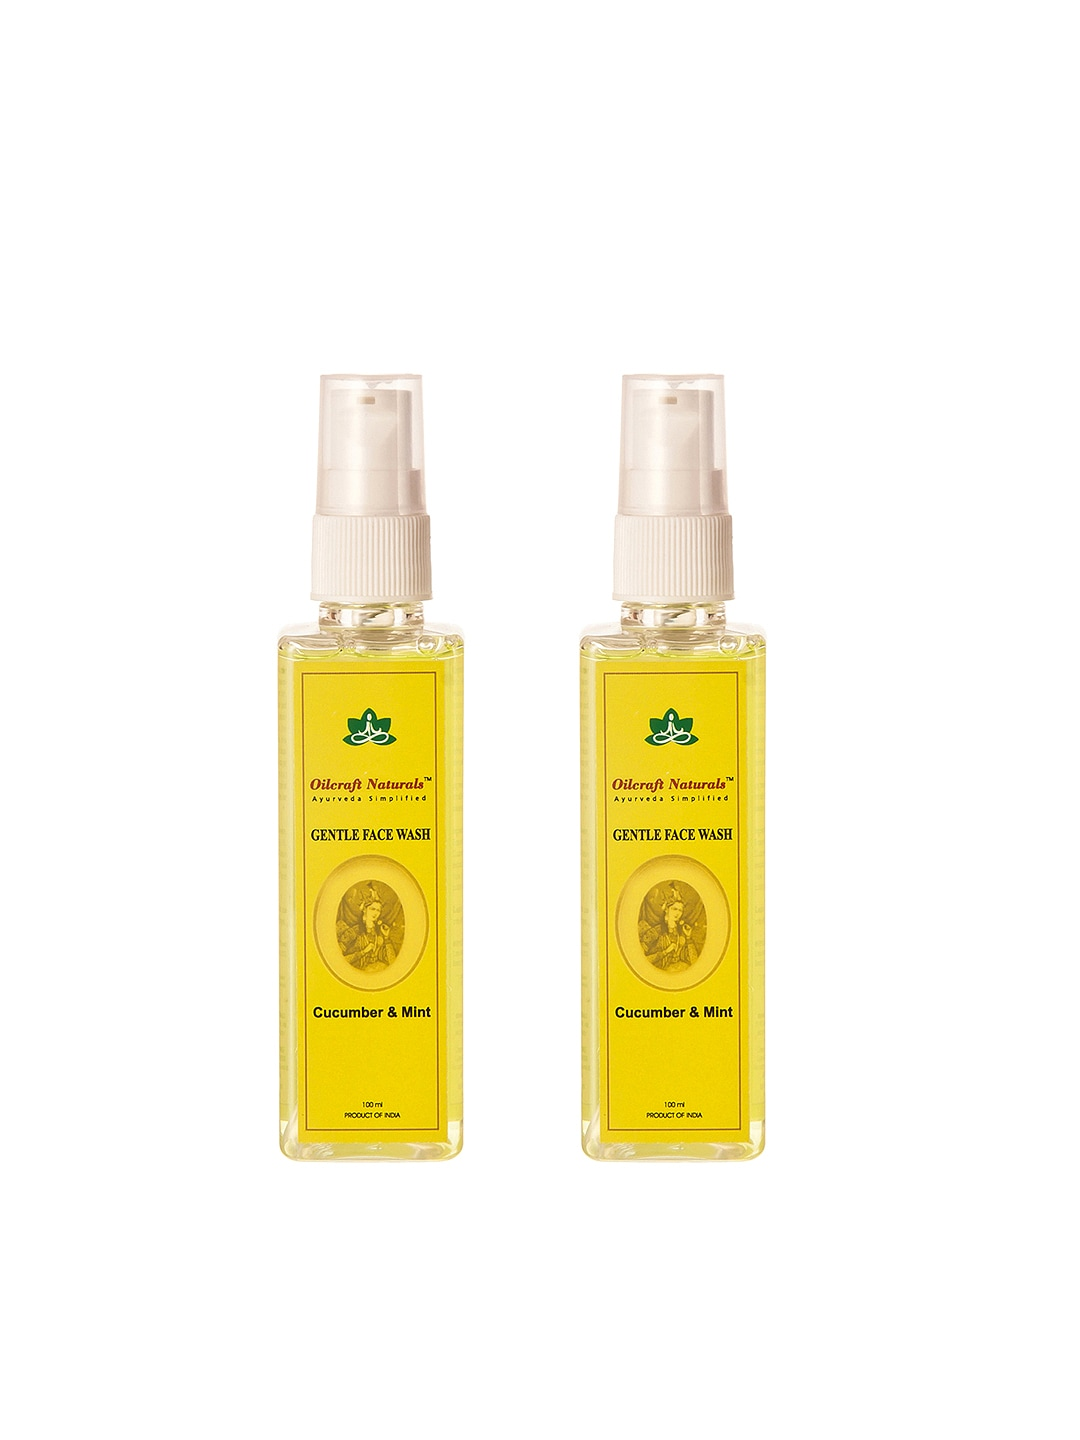 Oilcraft Naturals Cucumber and Mint Set of 2 Gentle Face Wash